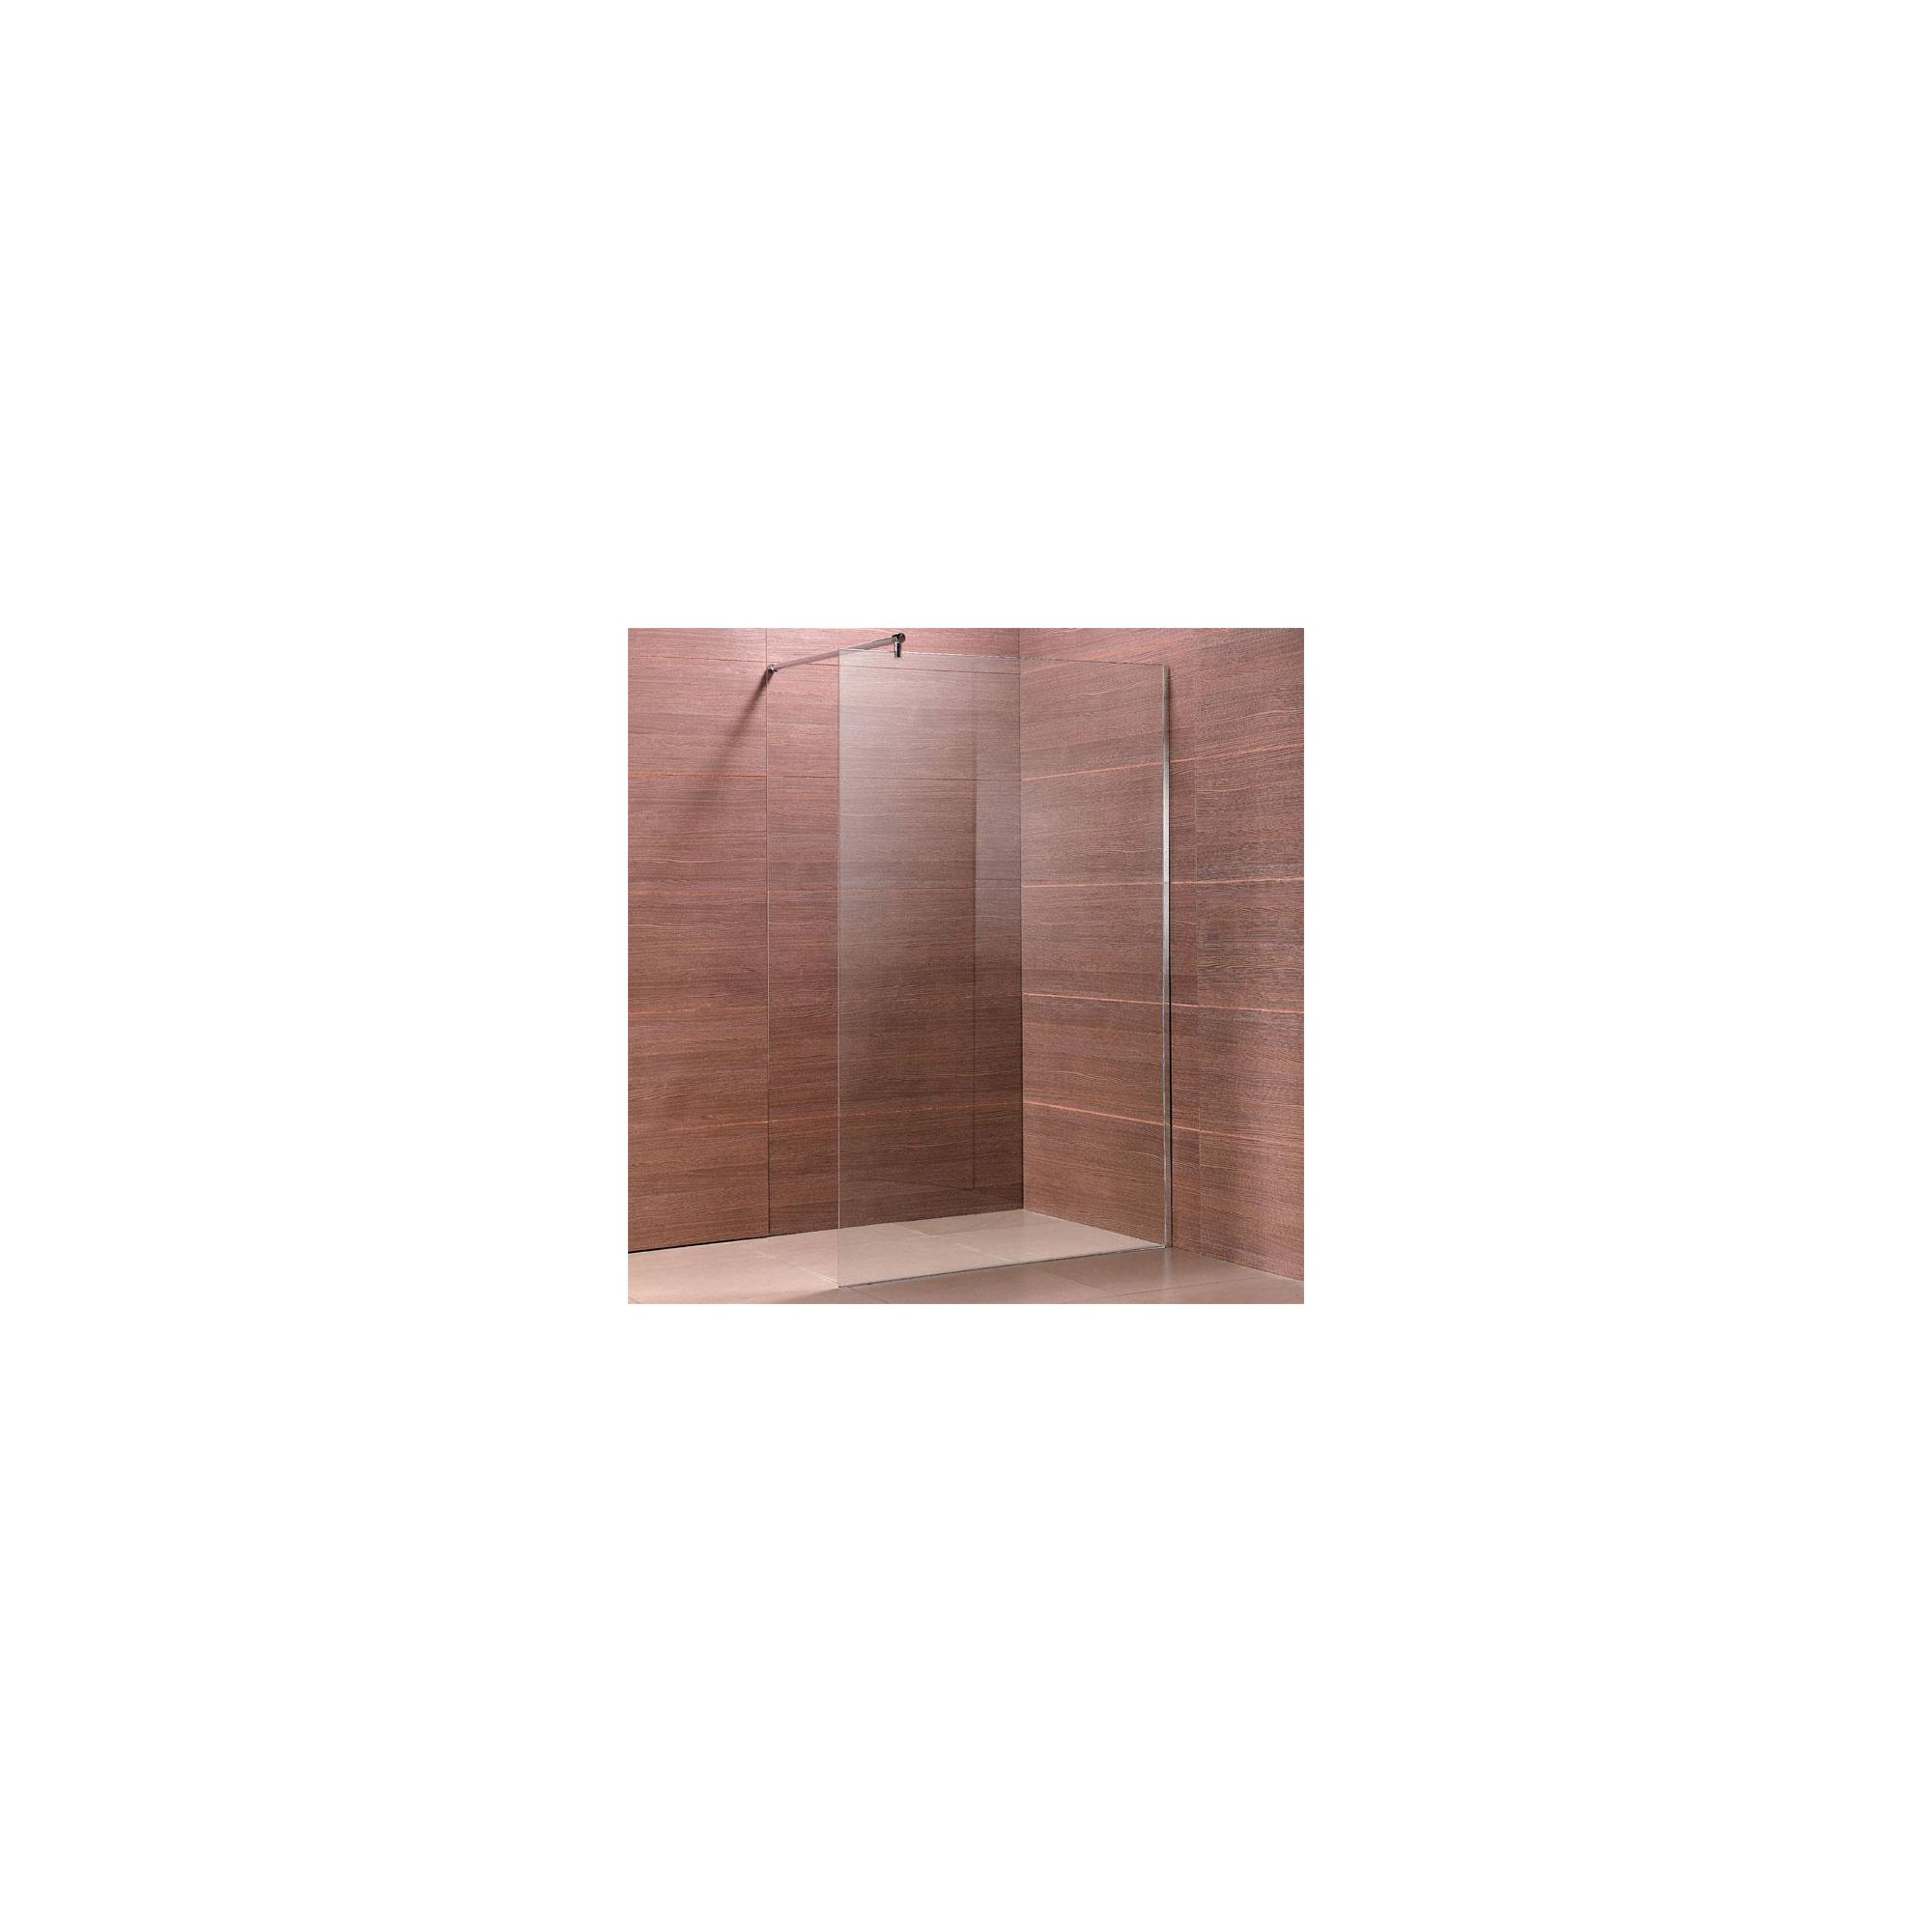 Duchy Premium Wet Room Glass Shower Panel, 1100mm x 760mm, 8mm Glass, Low Profile Tray at Tesco Direct